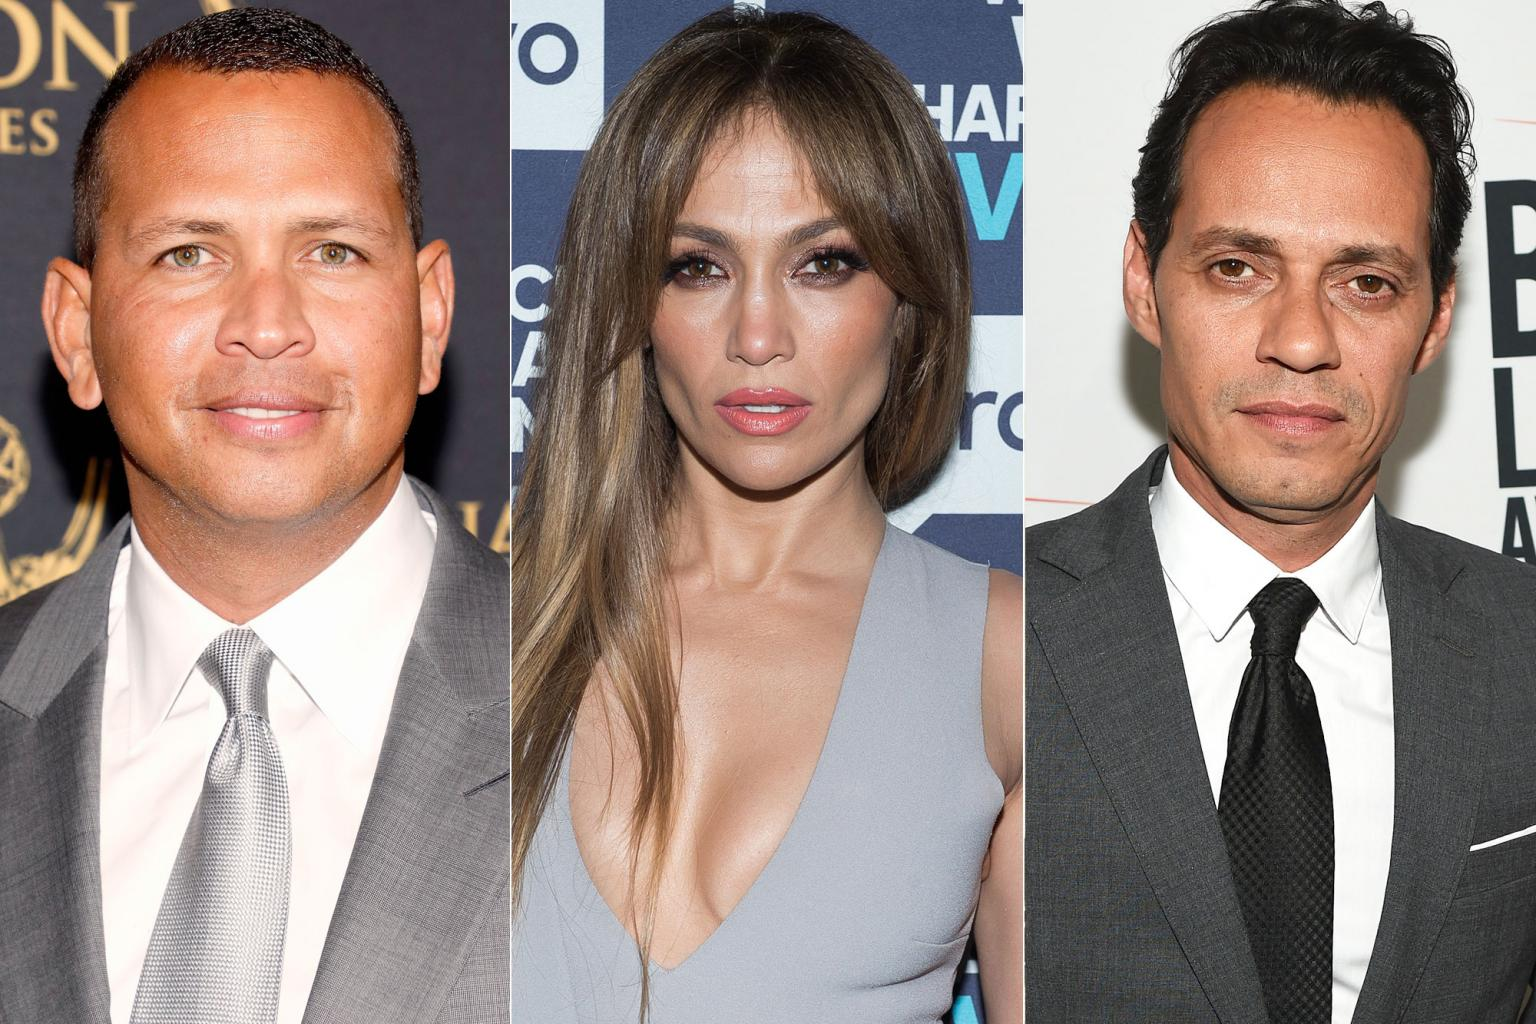 Jennifer Lopez, Marc Anthony and Alex Rodriguez Join Forces for Star-Studded Benefit Concert Aiding PuertoRico